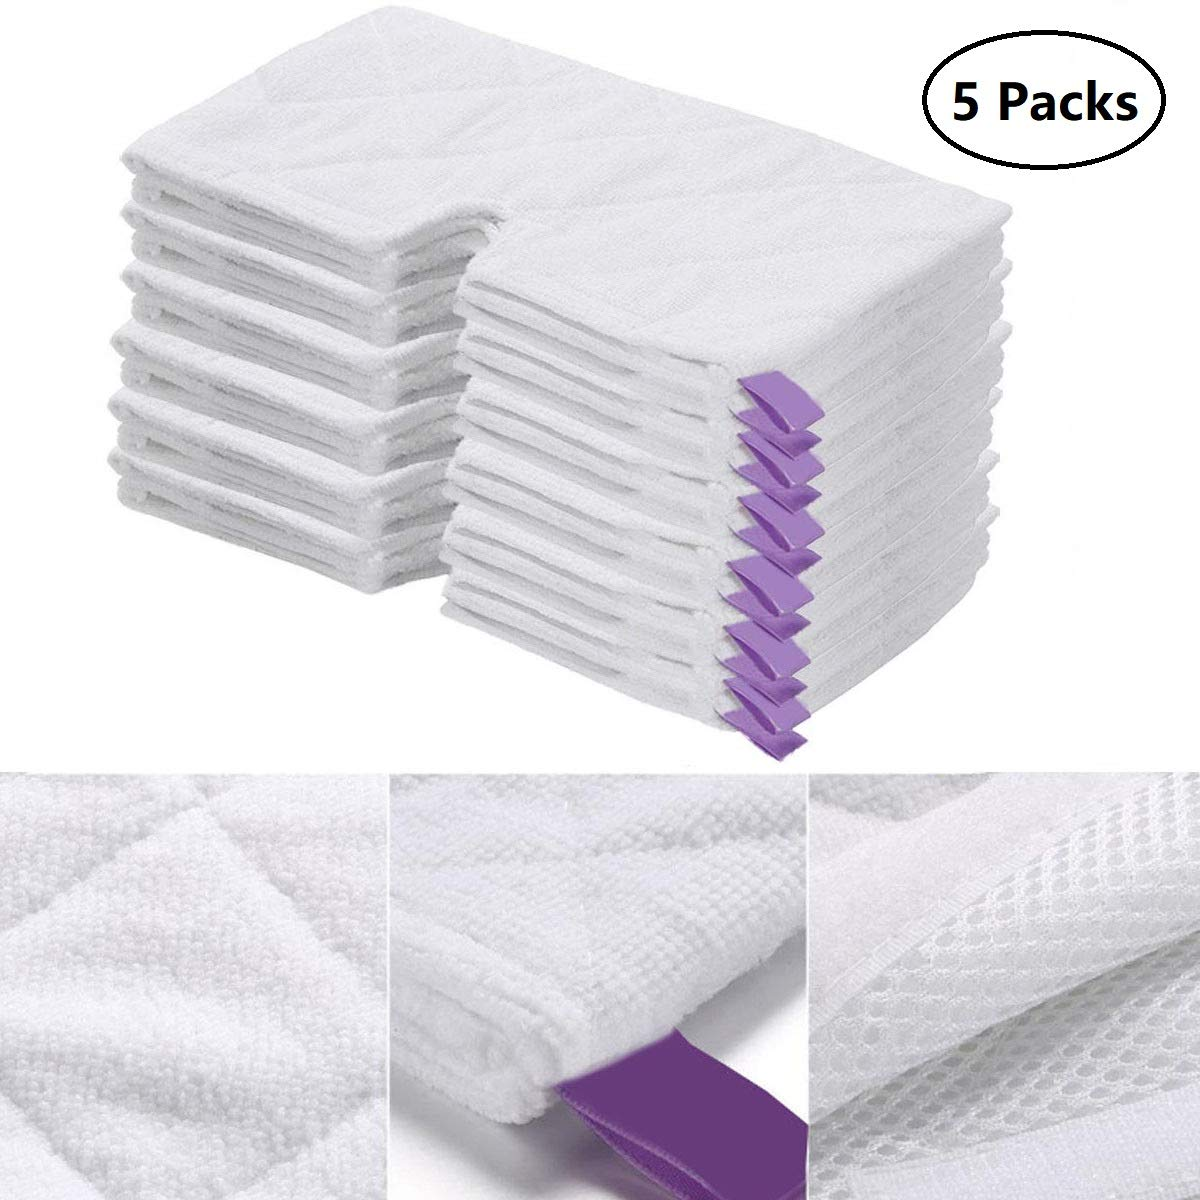 Vamotto 5 Pack Microfiber Steam Mop Pads Replacement for Shark Steam Pocket Mops S3901 S3500 Series S3501 S3601 S3550 S3801 SE450 S3801CO S3601D